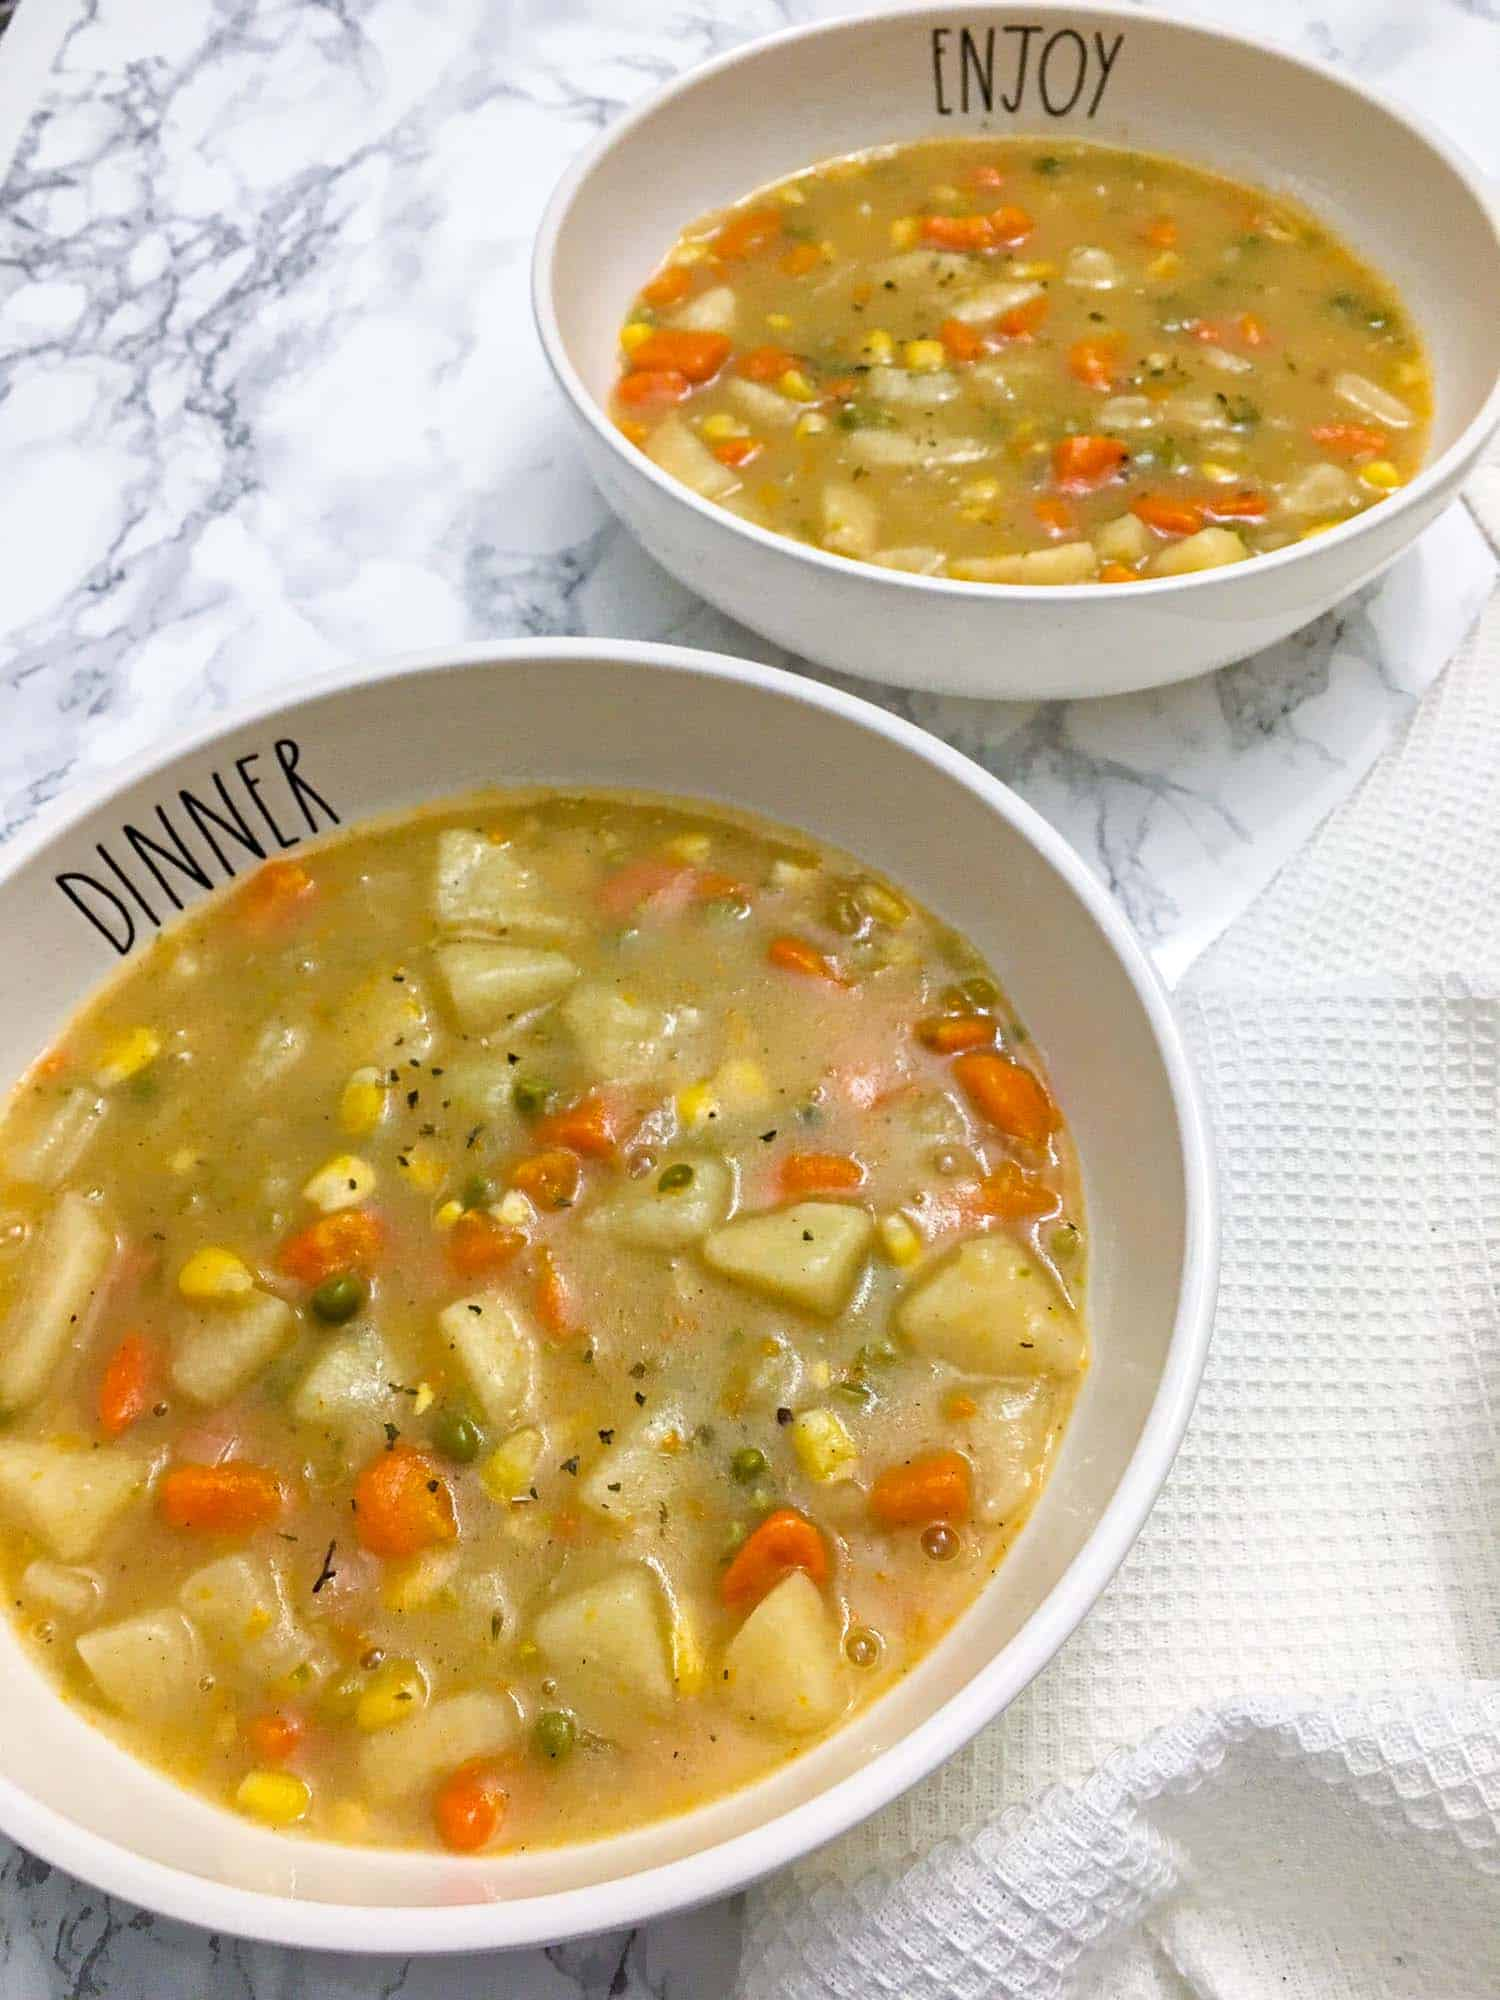 two bowls of vegetable soup on marble counter